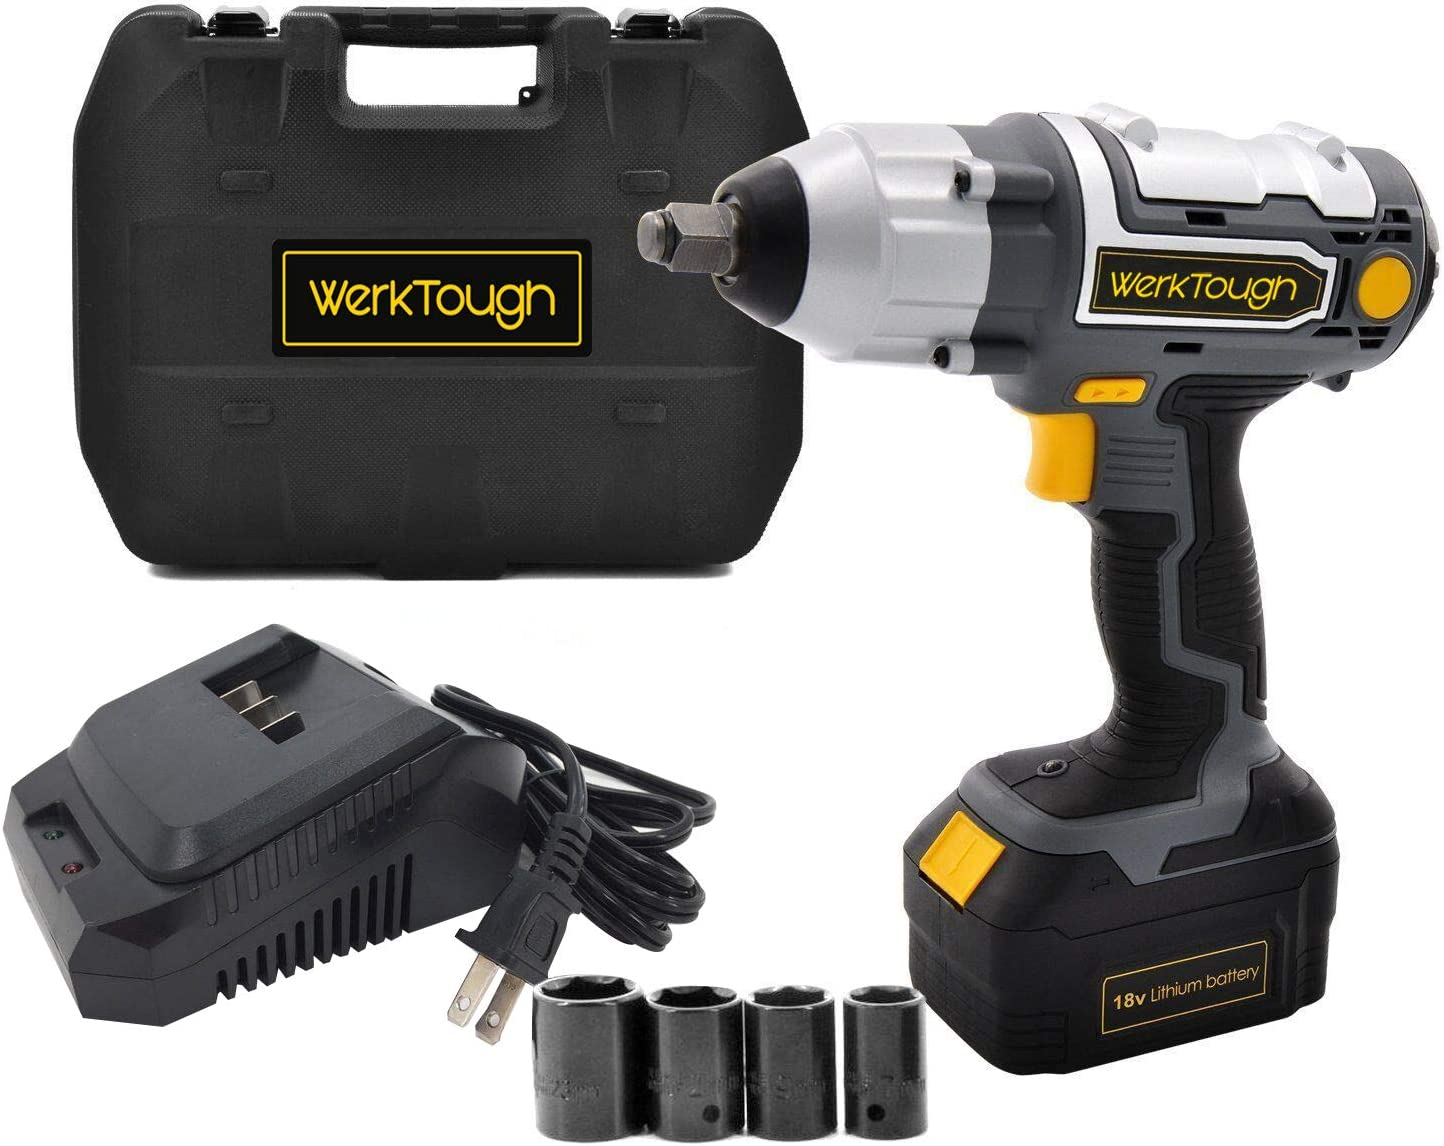 Werktough 1 2 Inch Cordless Impact Wrench 18 20V Battery Operated Electric Impact Driver Wrench Kit Battery Charger Included IW03